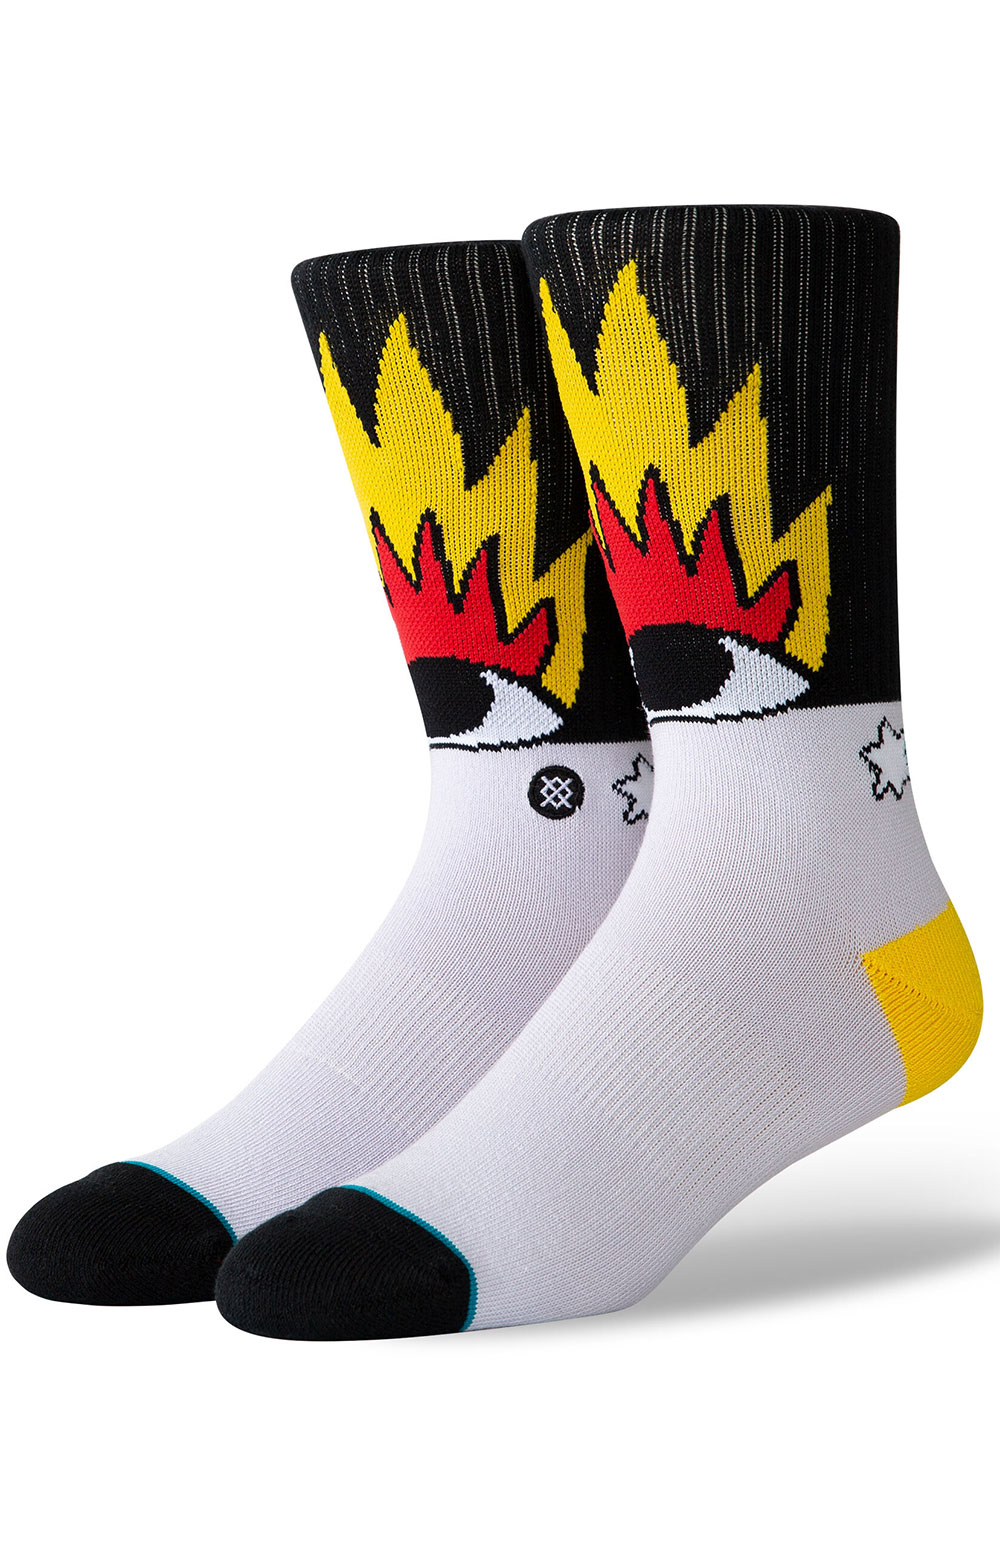 Fire And Eyes Socks